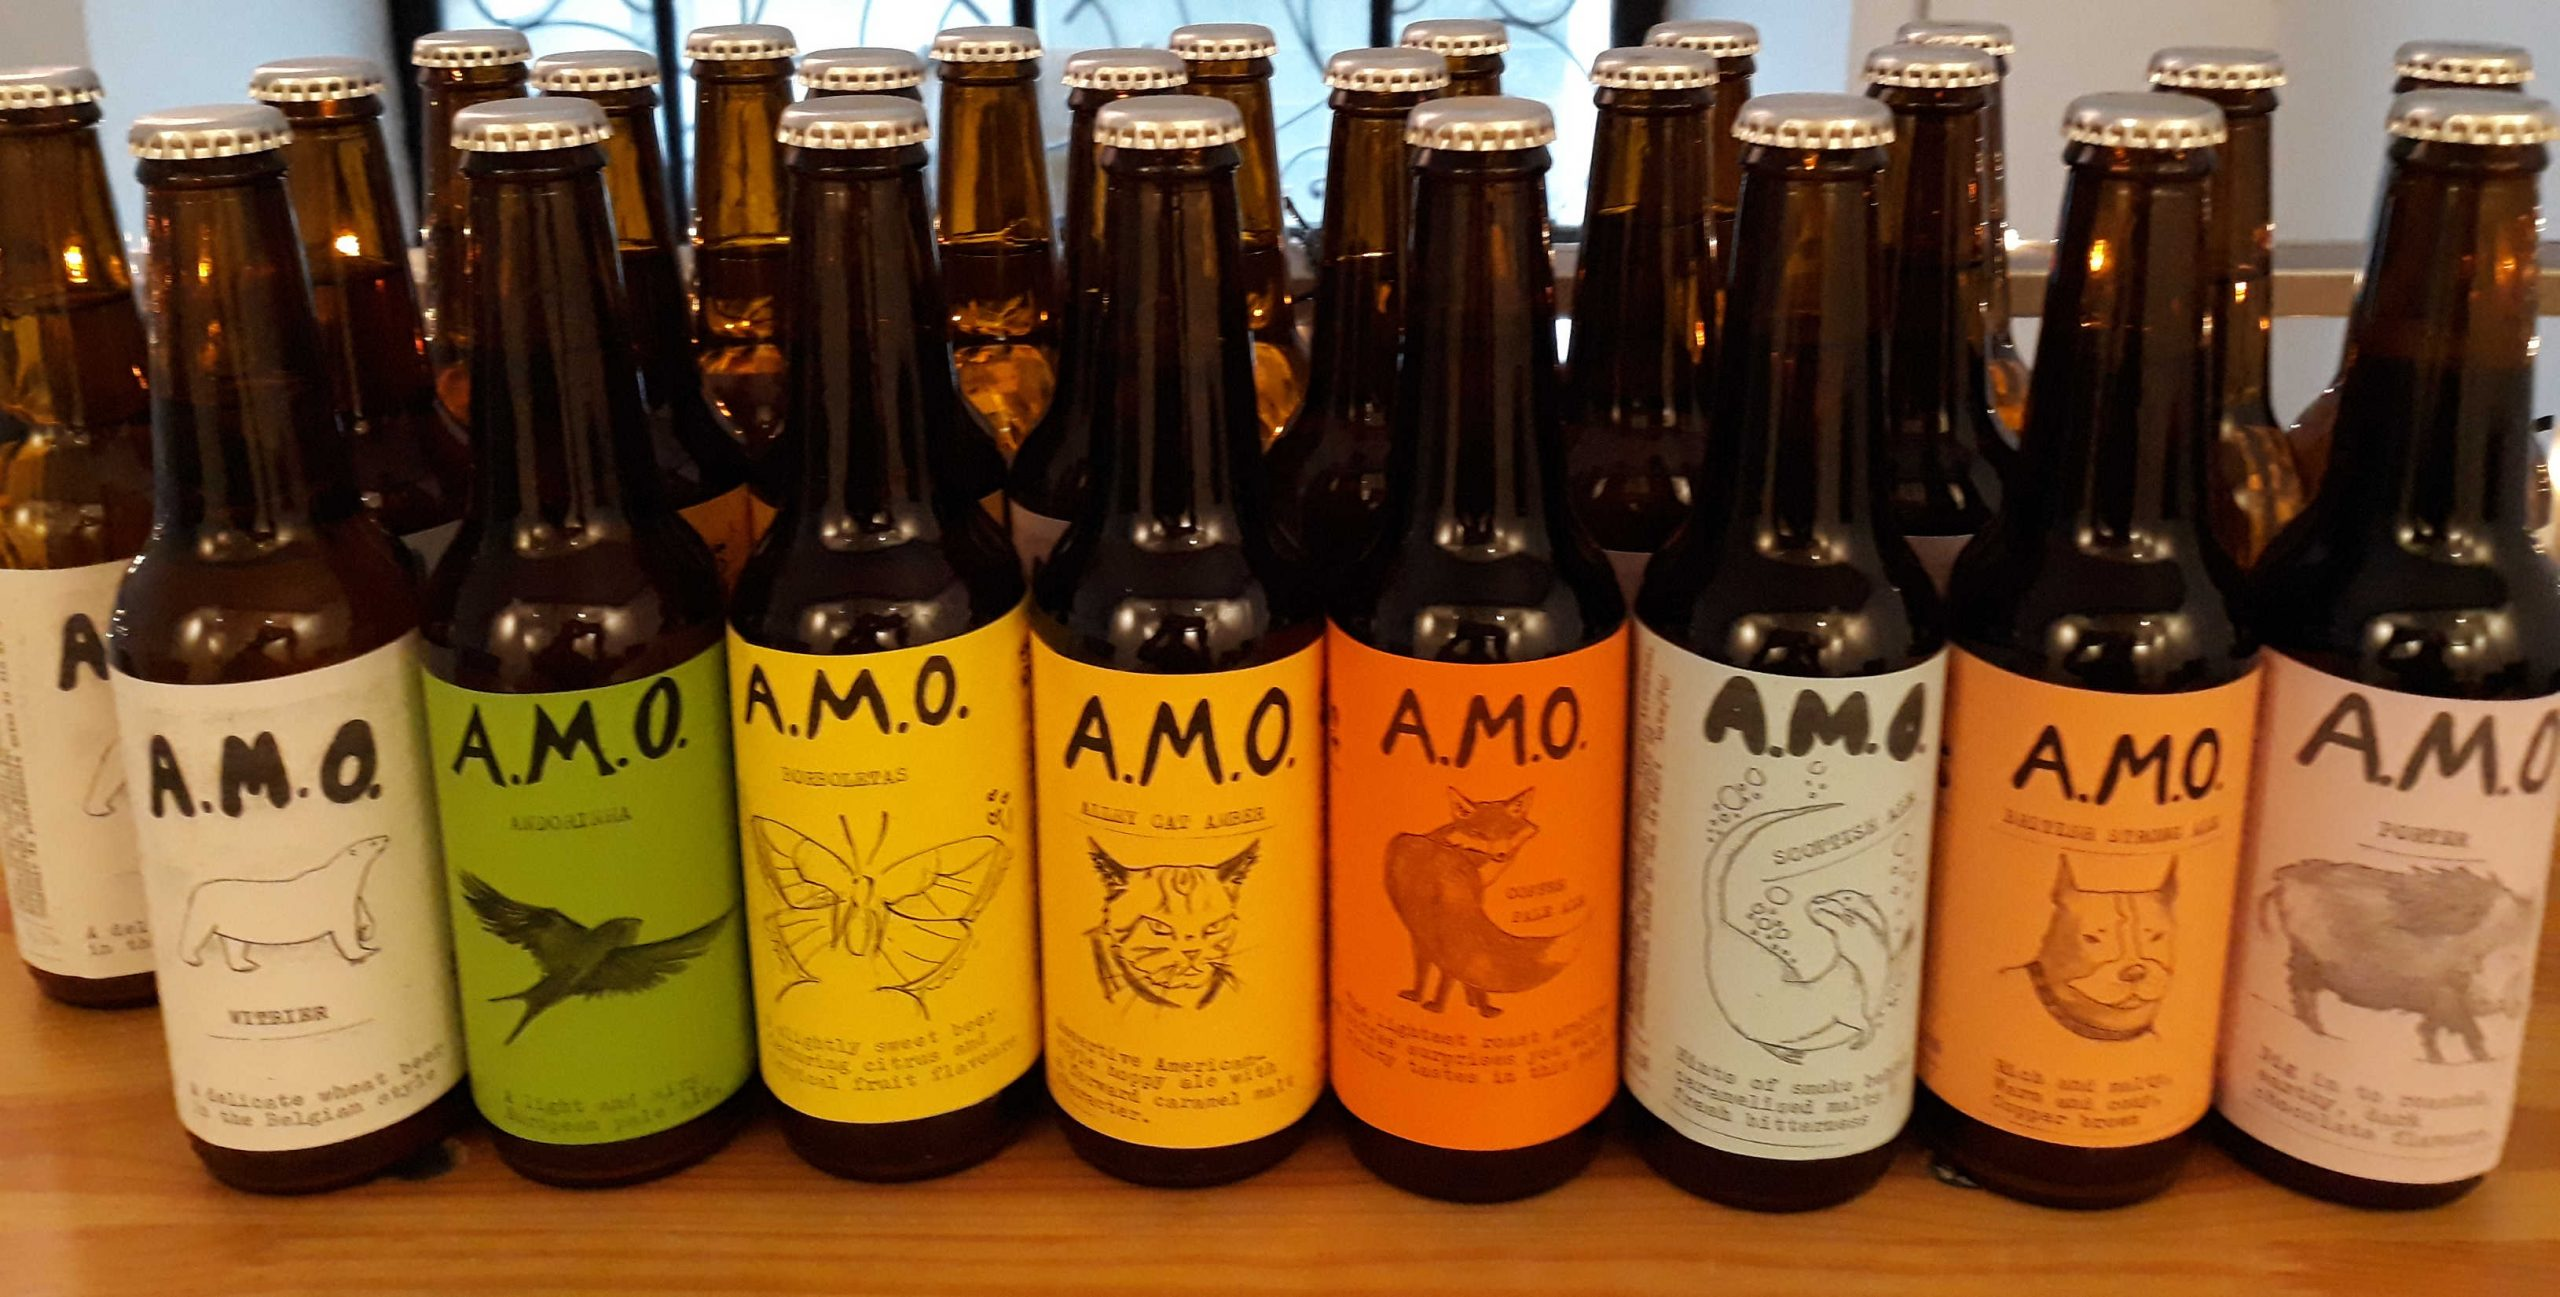 A.M.O. Brewery